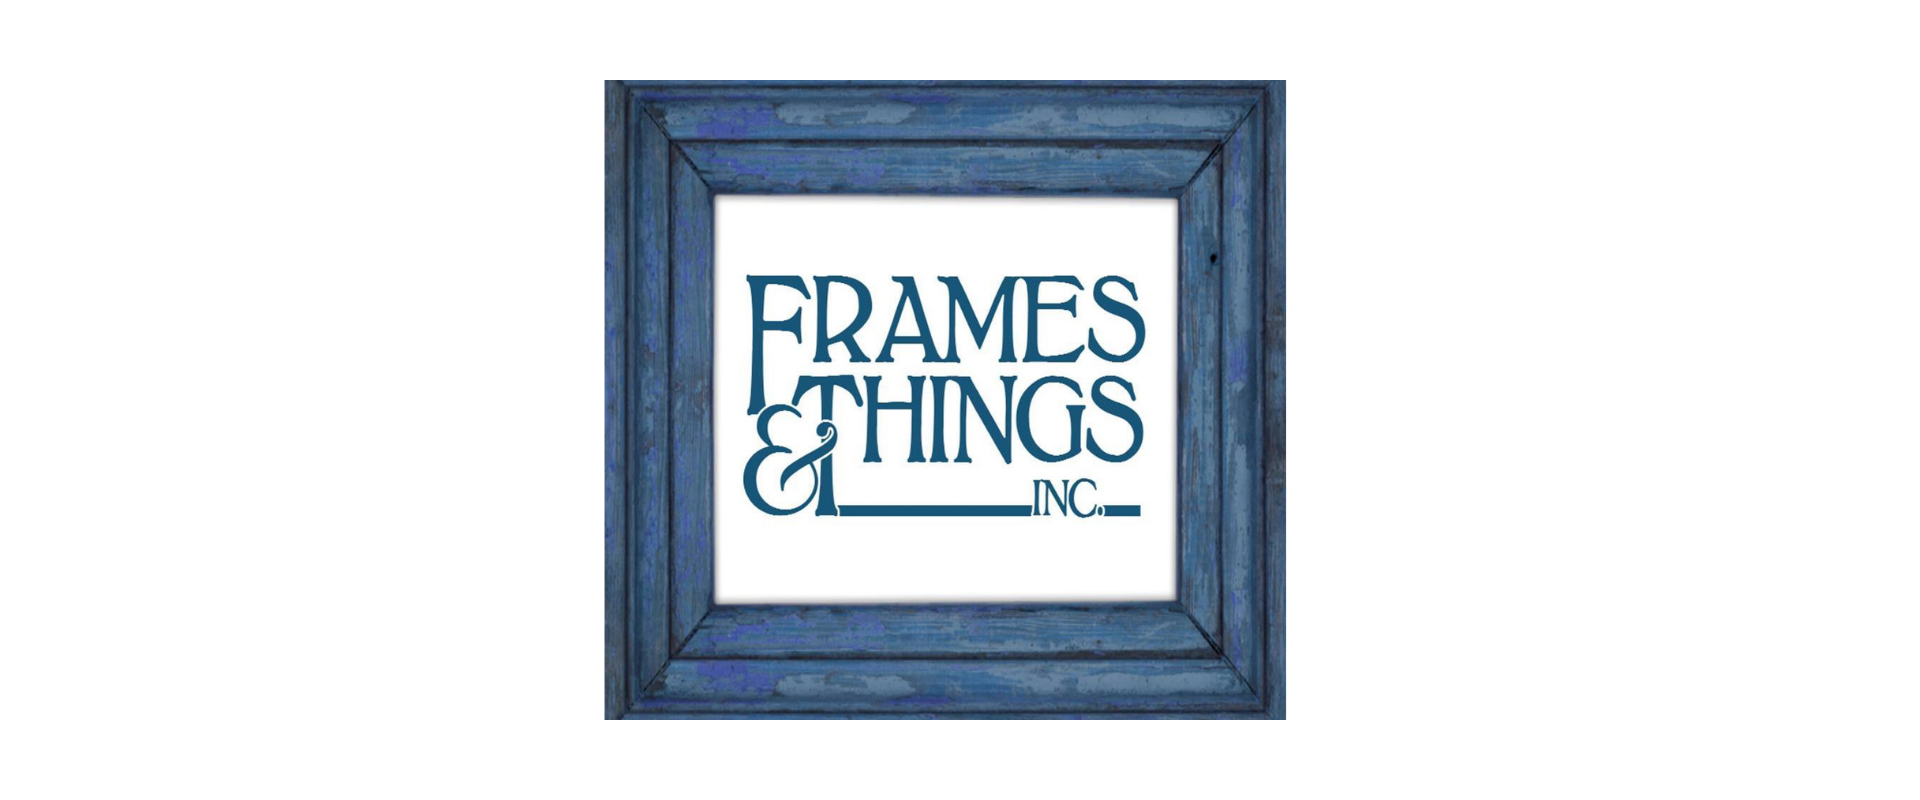 Frames and Things Inc.